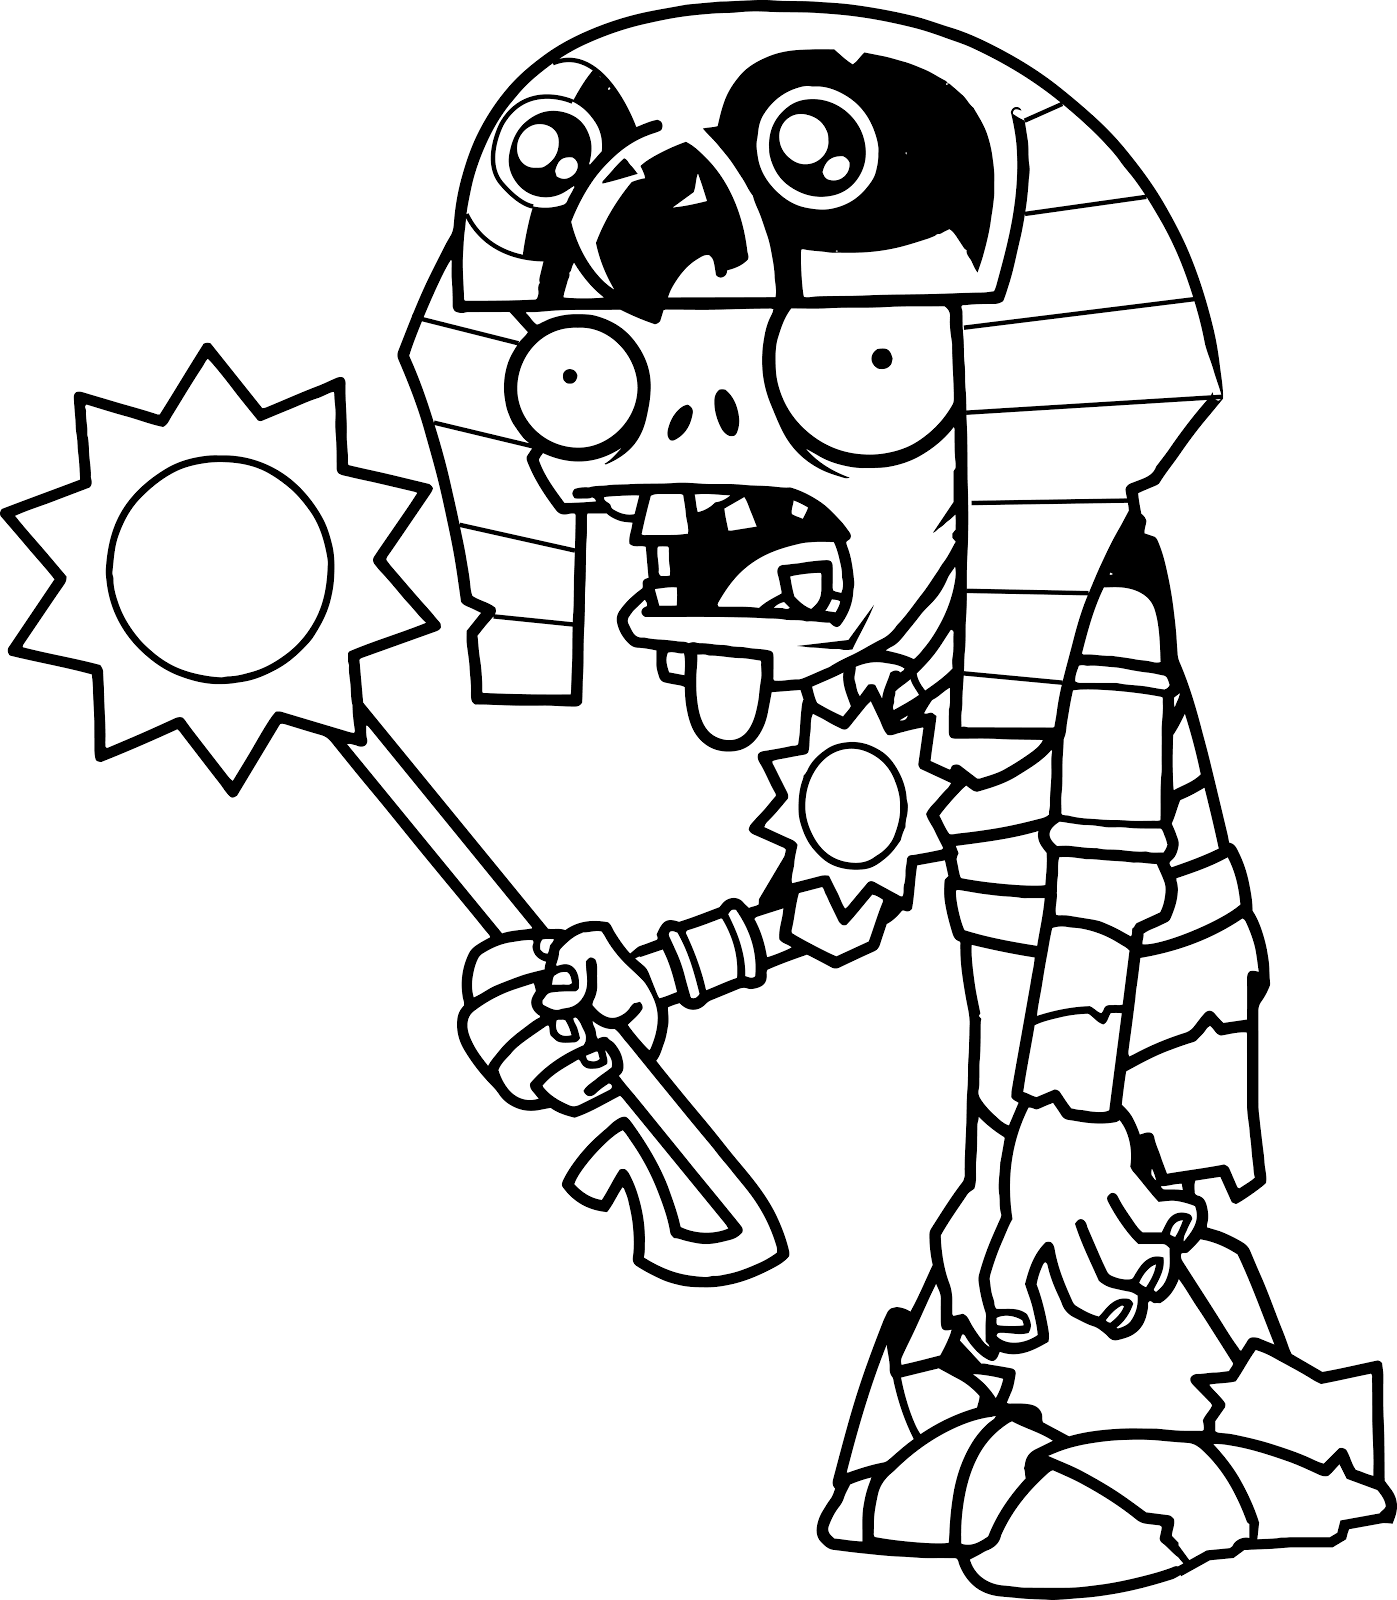 Coloring Pages For Plants Vs Zombies : Original coloring pages plants vs zombies egyptian